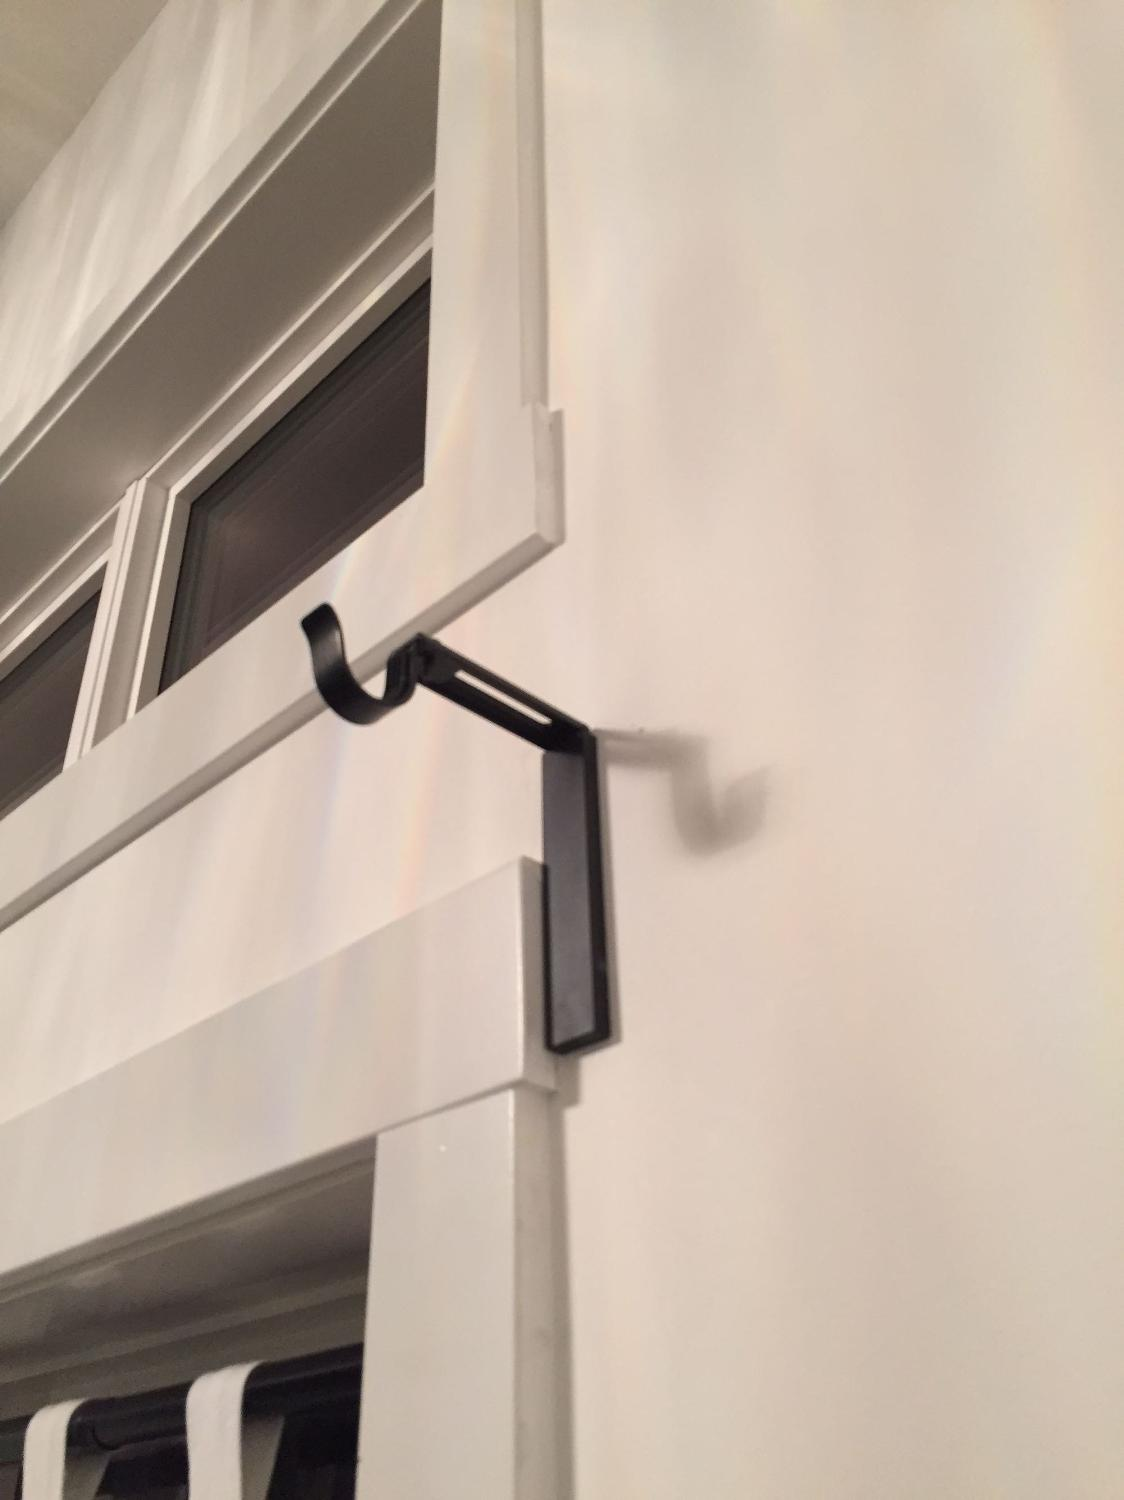 Find More Ikea Window Curtain Rod Holder For Sale At Up To